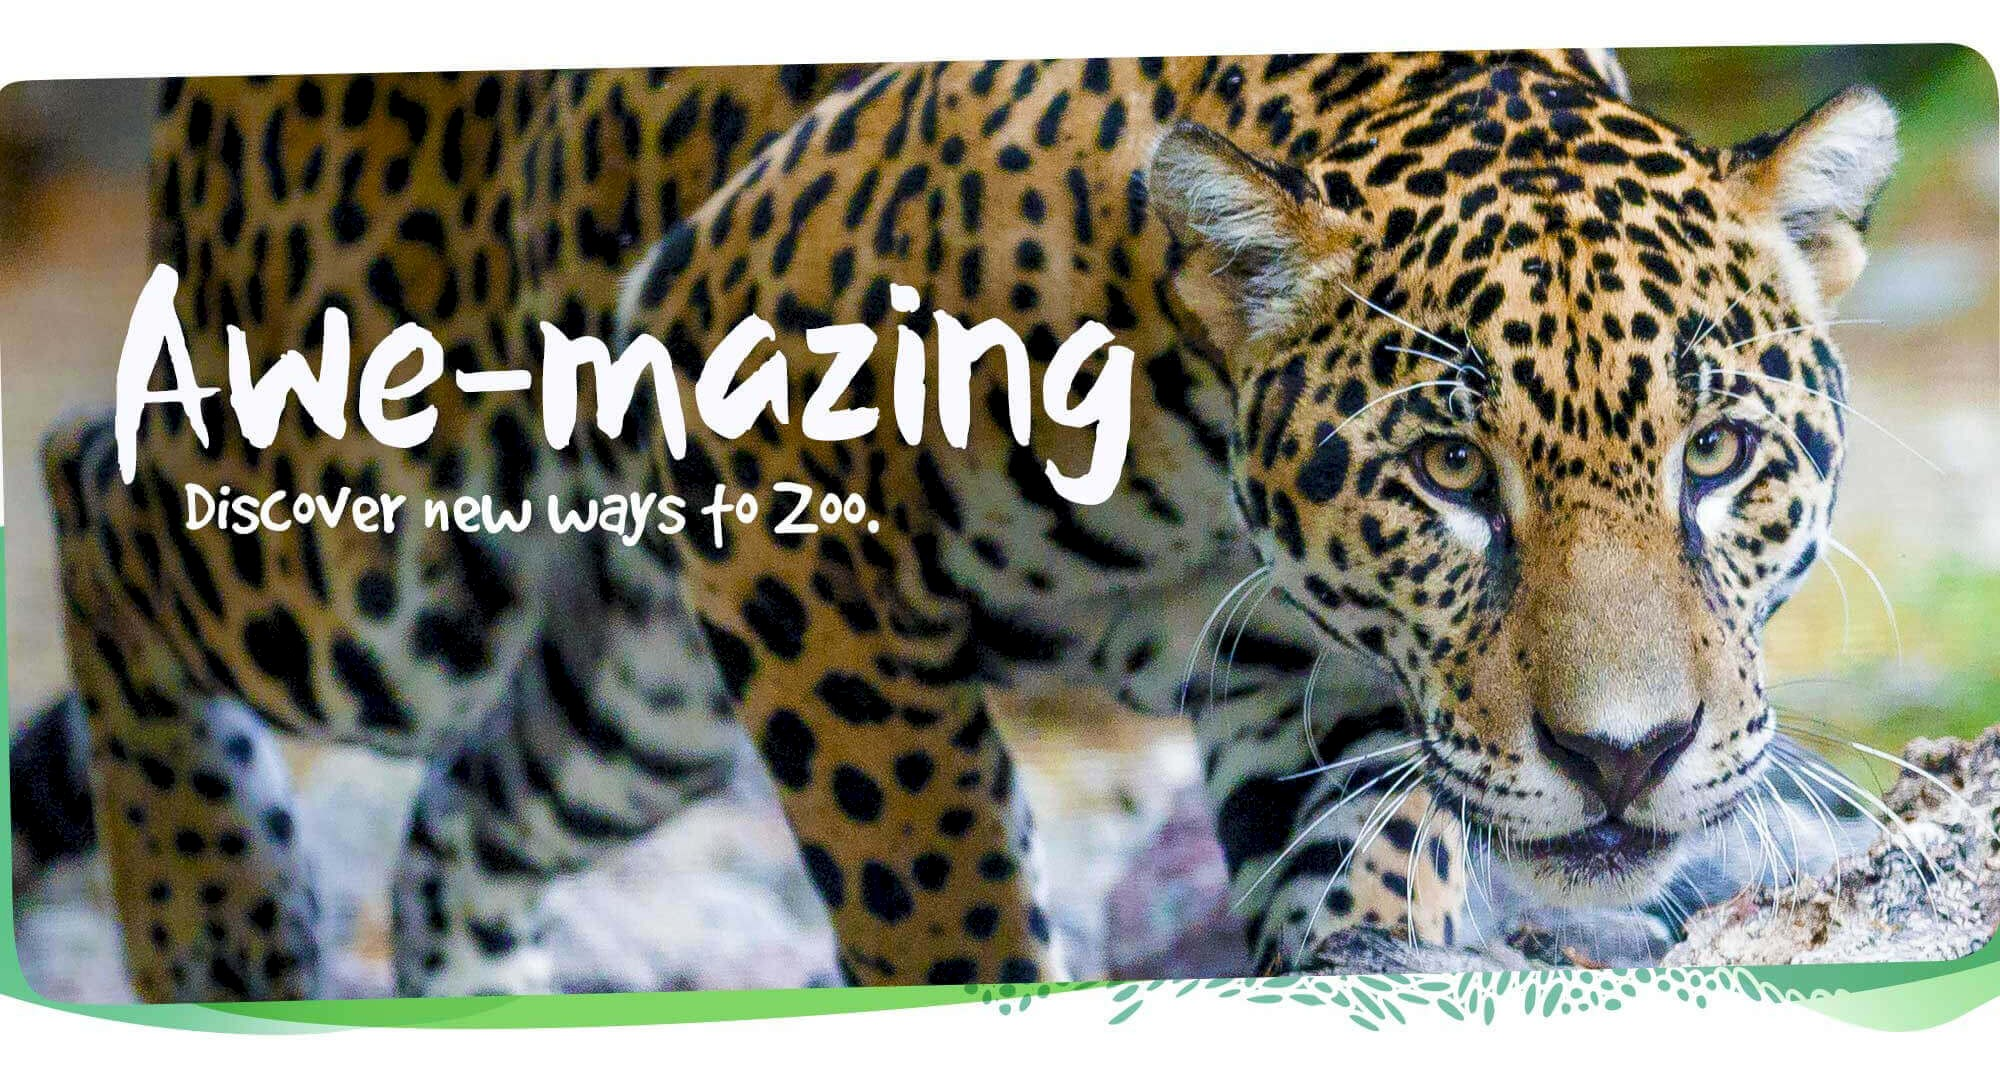 Discover awe-mazing new ways to zoo at The Living Desert Zoo and Gardens. Click for more information.